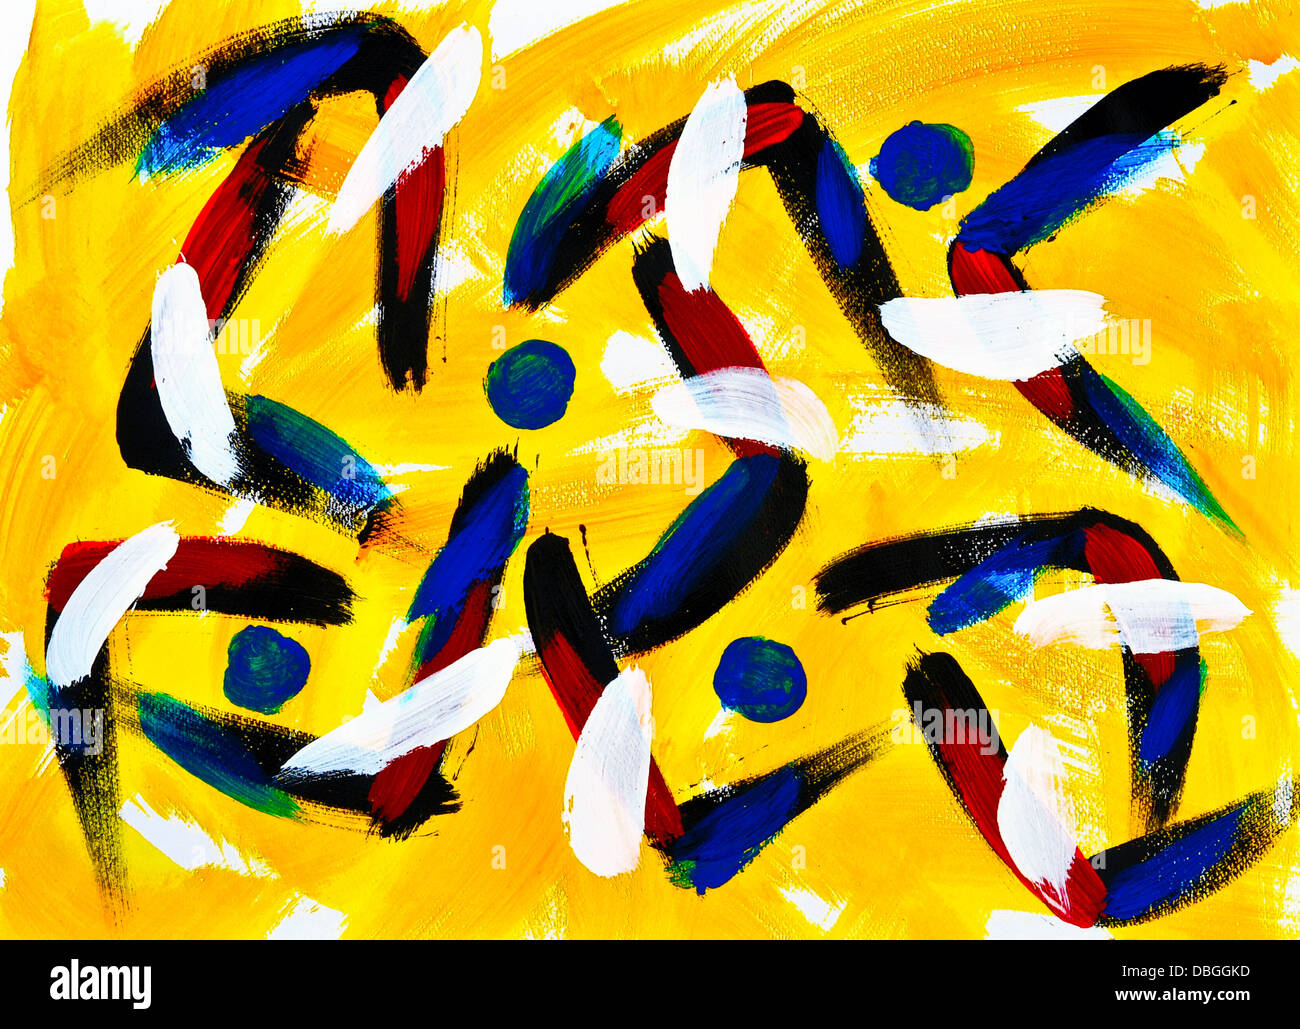 Abstract acrylic painting on paper. Stock Photo